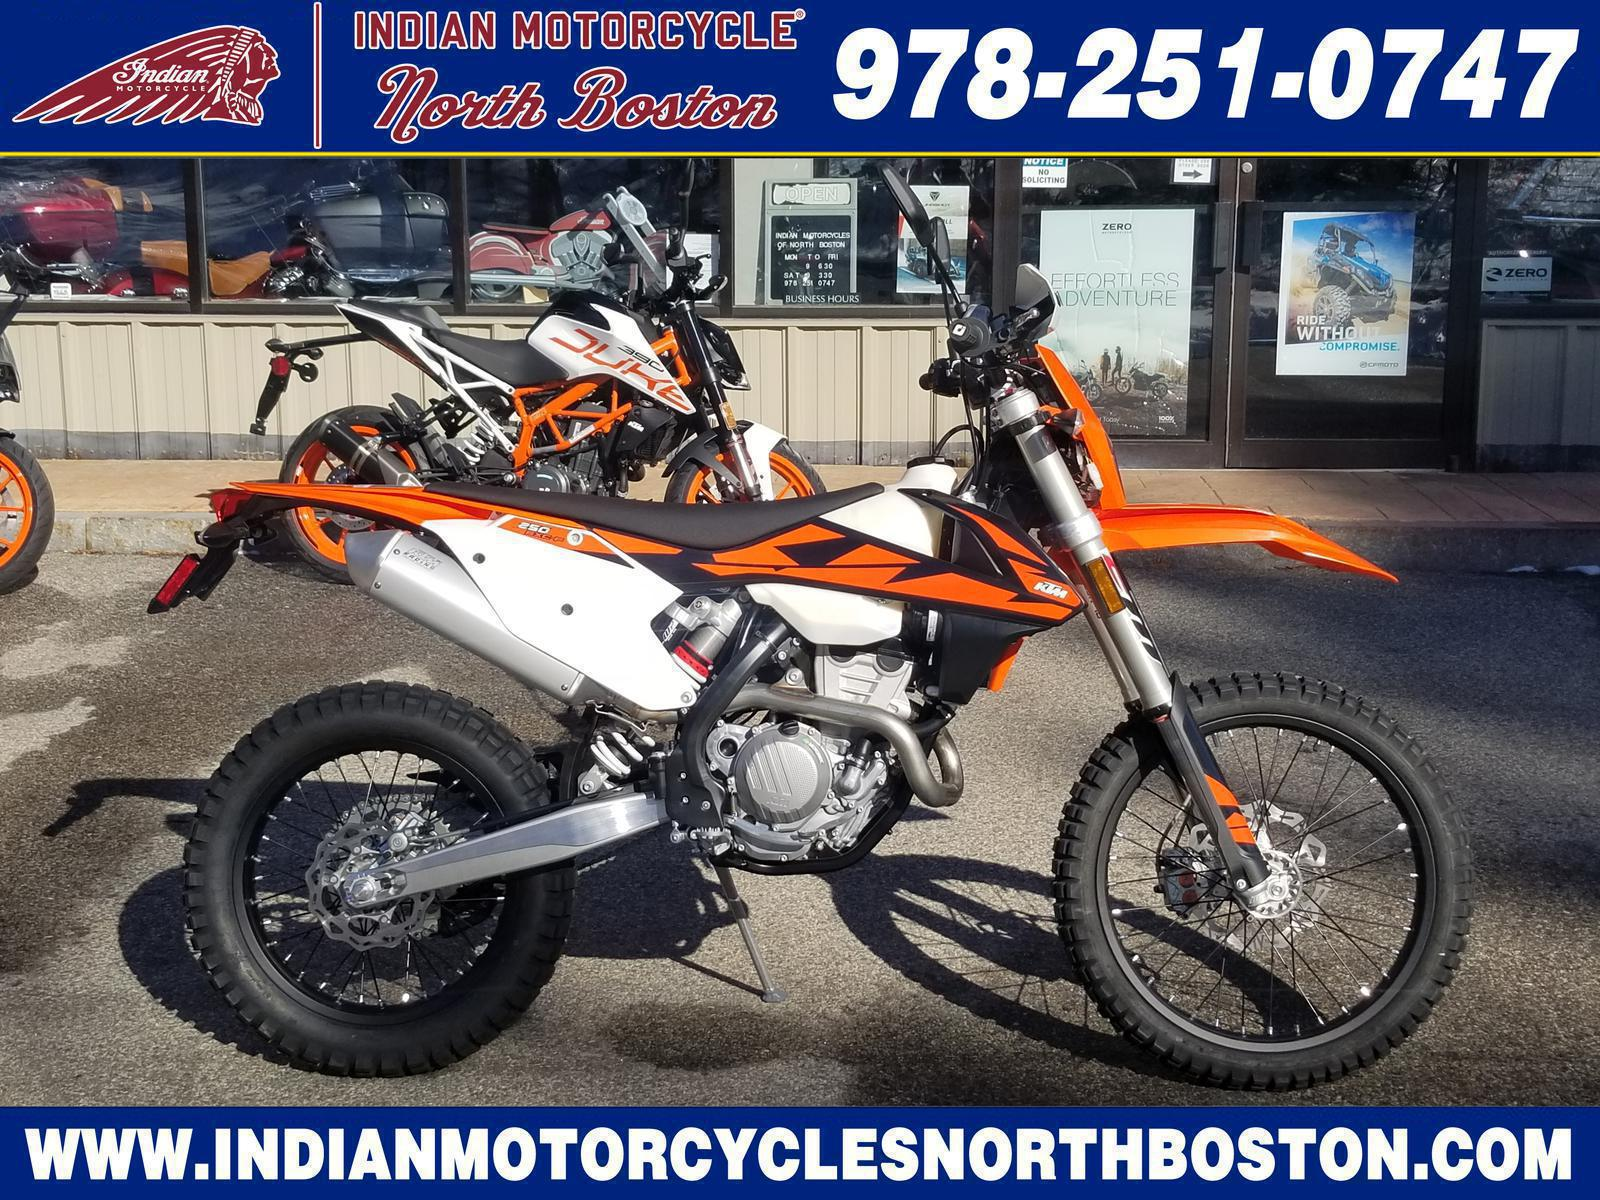 Inventory from KTM Indian Motorcycle of North Boston